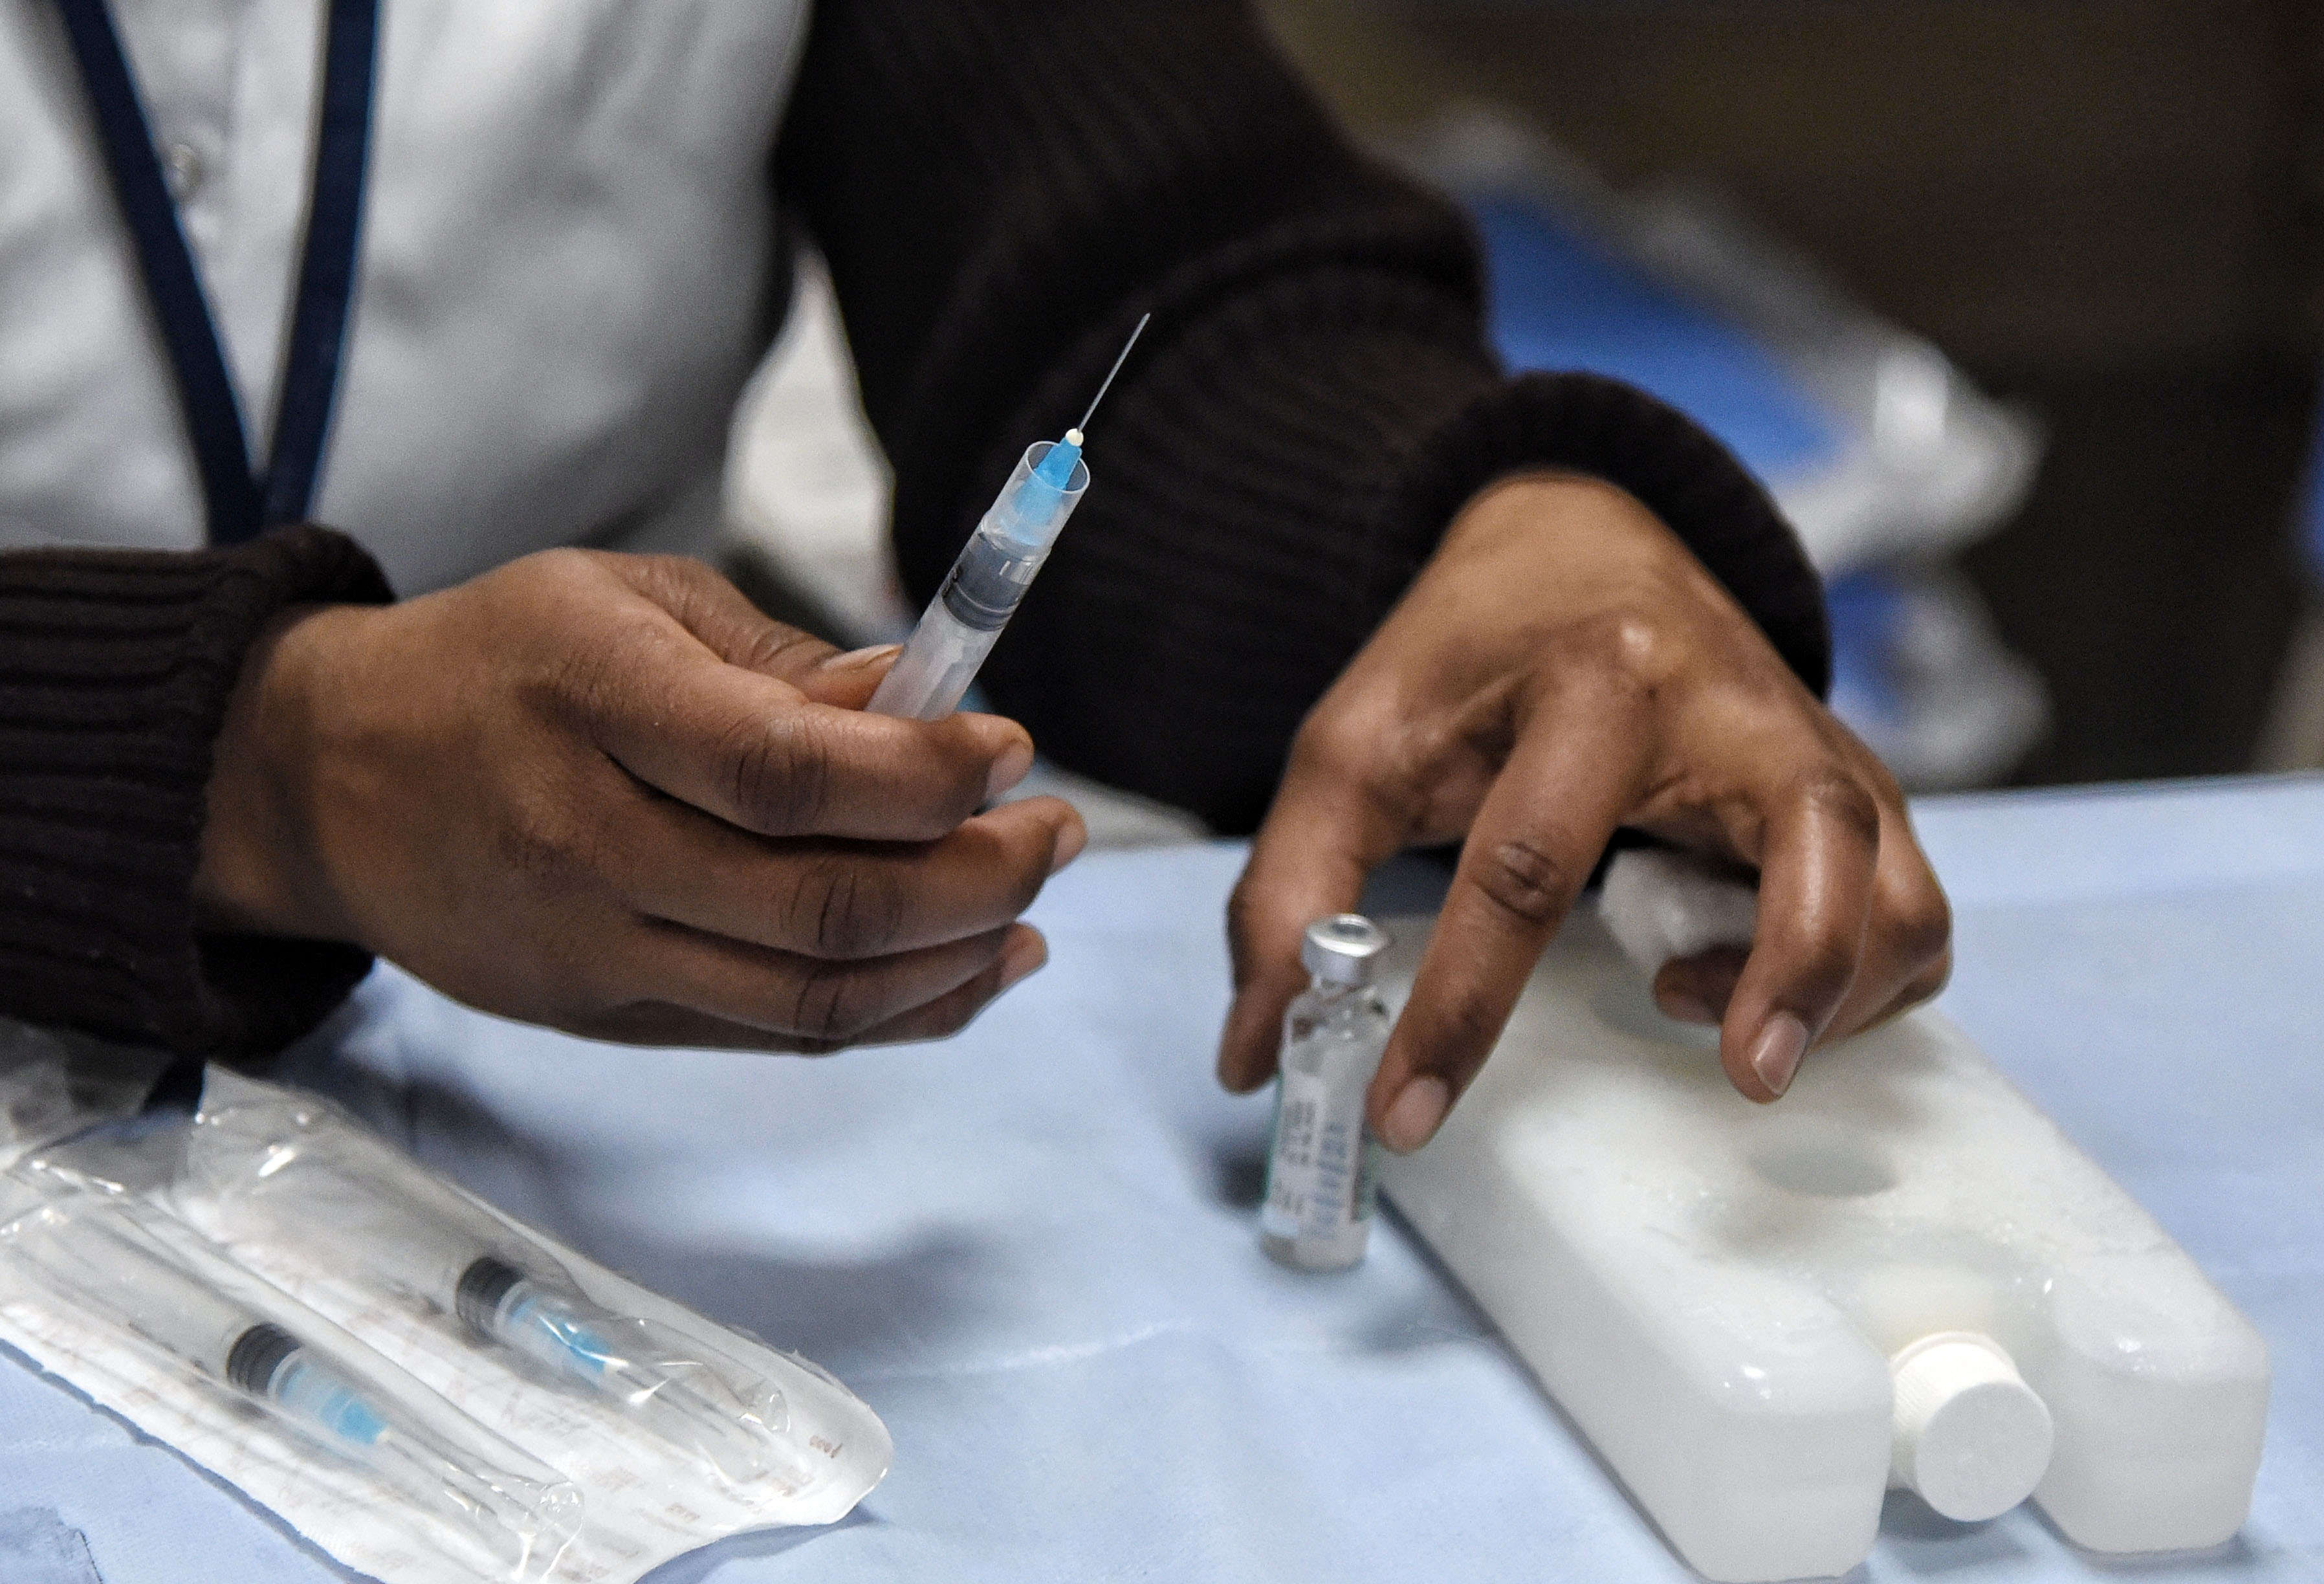 Vaccine wastage area of concern for government: National health authority CEO